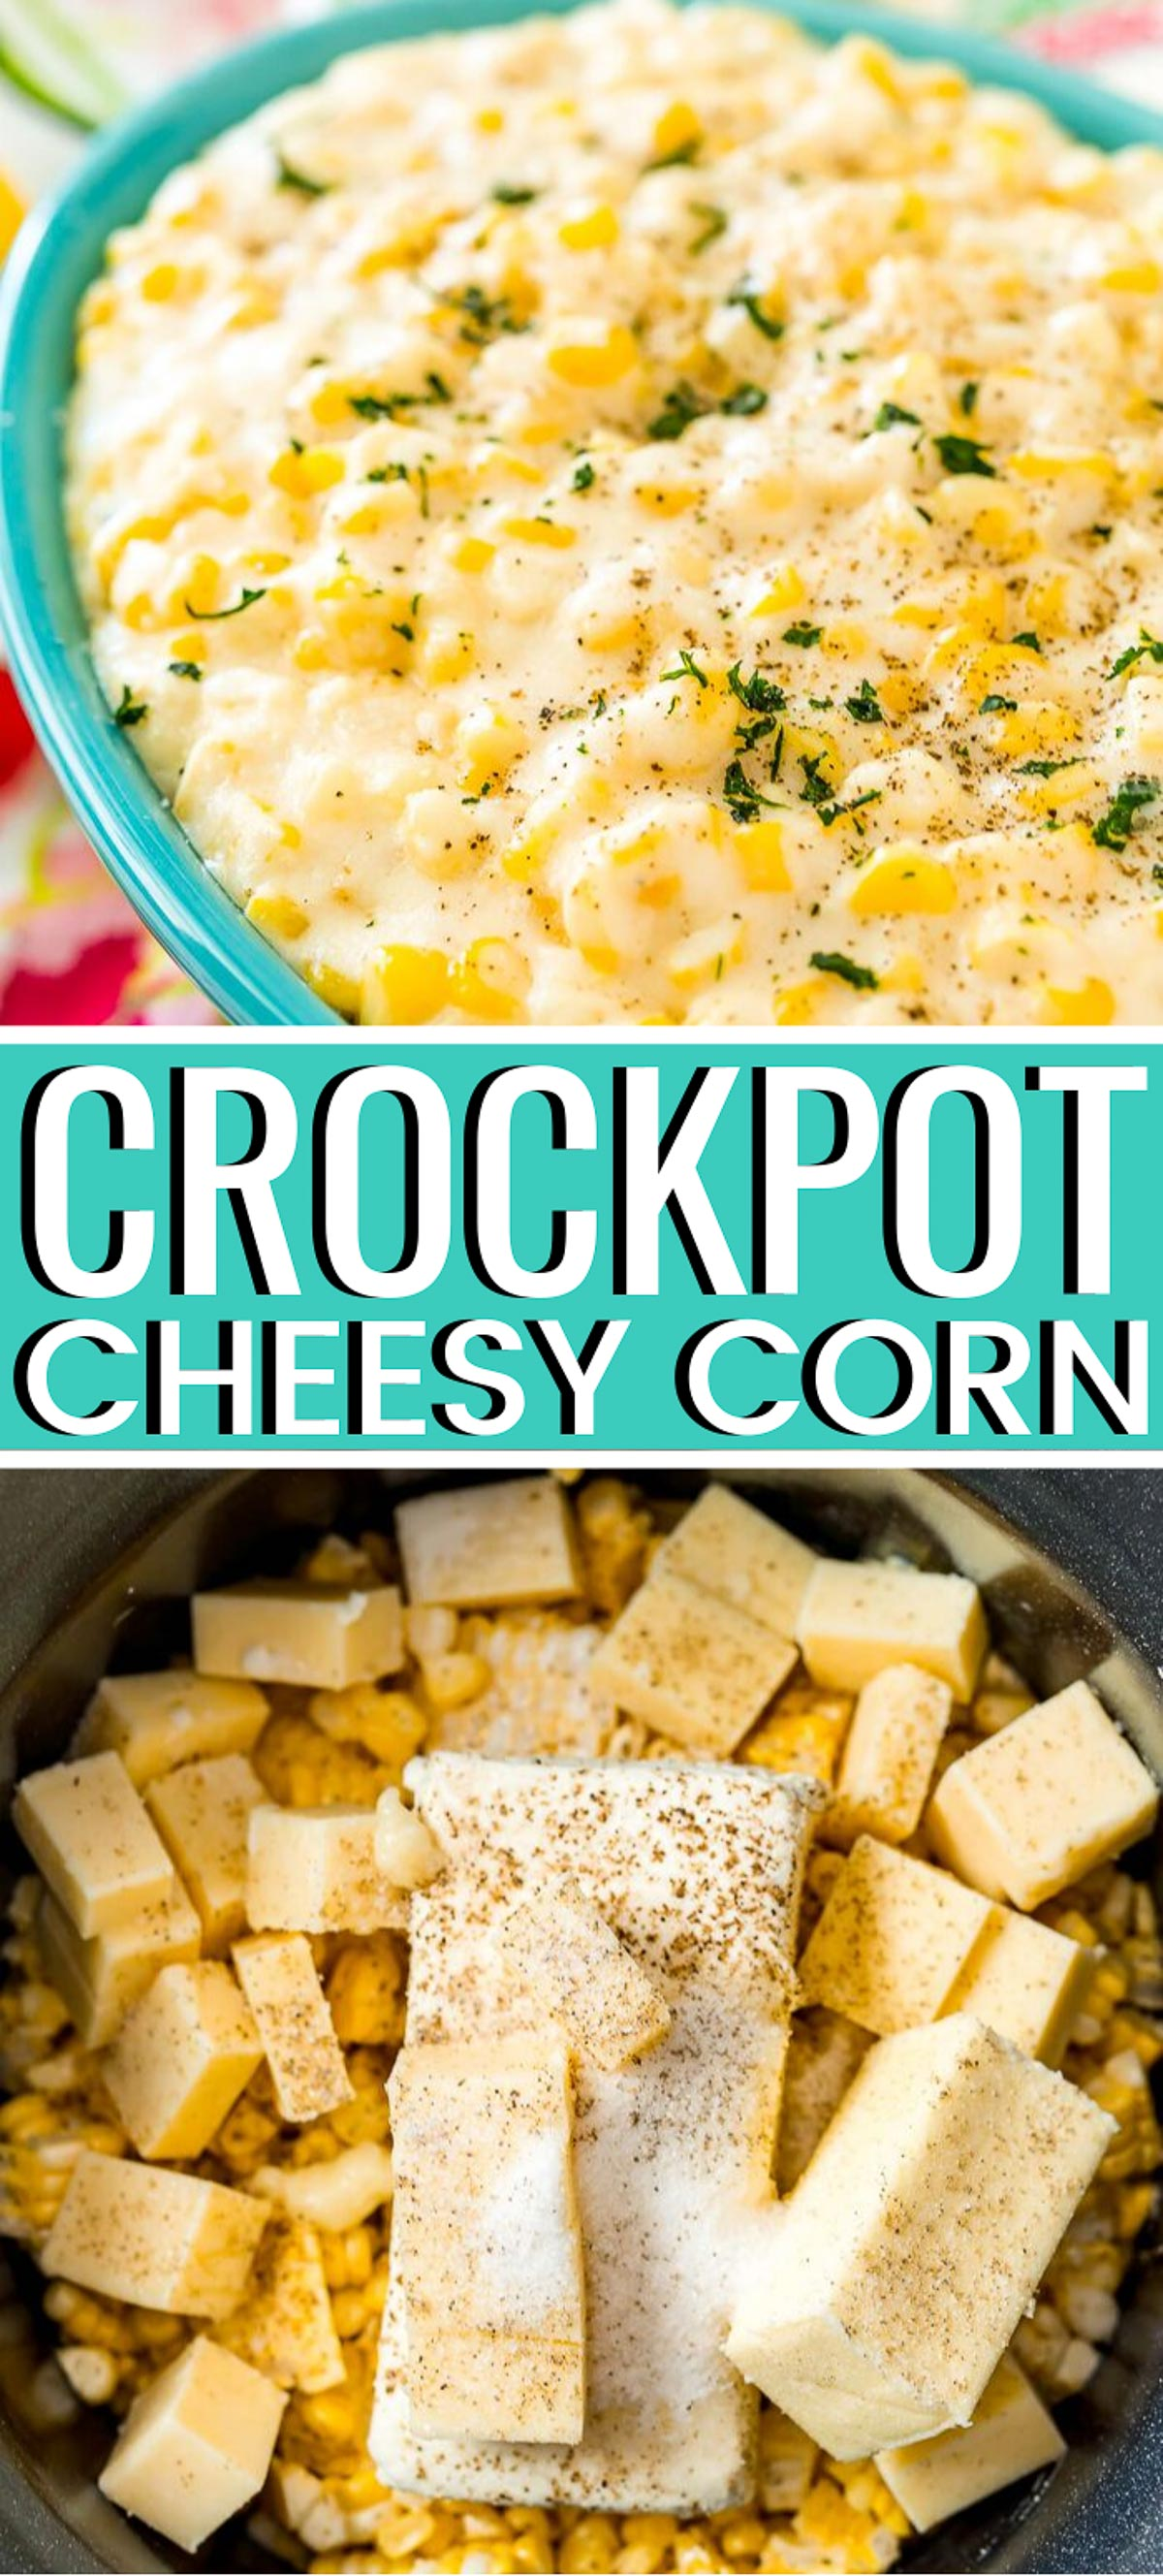 Cheesy Corn is a delicious side dish made in the crockpot with corn, cheddar cheese, butter, cream cheese, heavy cream, and seasonings. via @sugarandsoulco